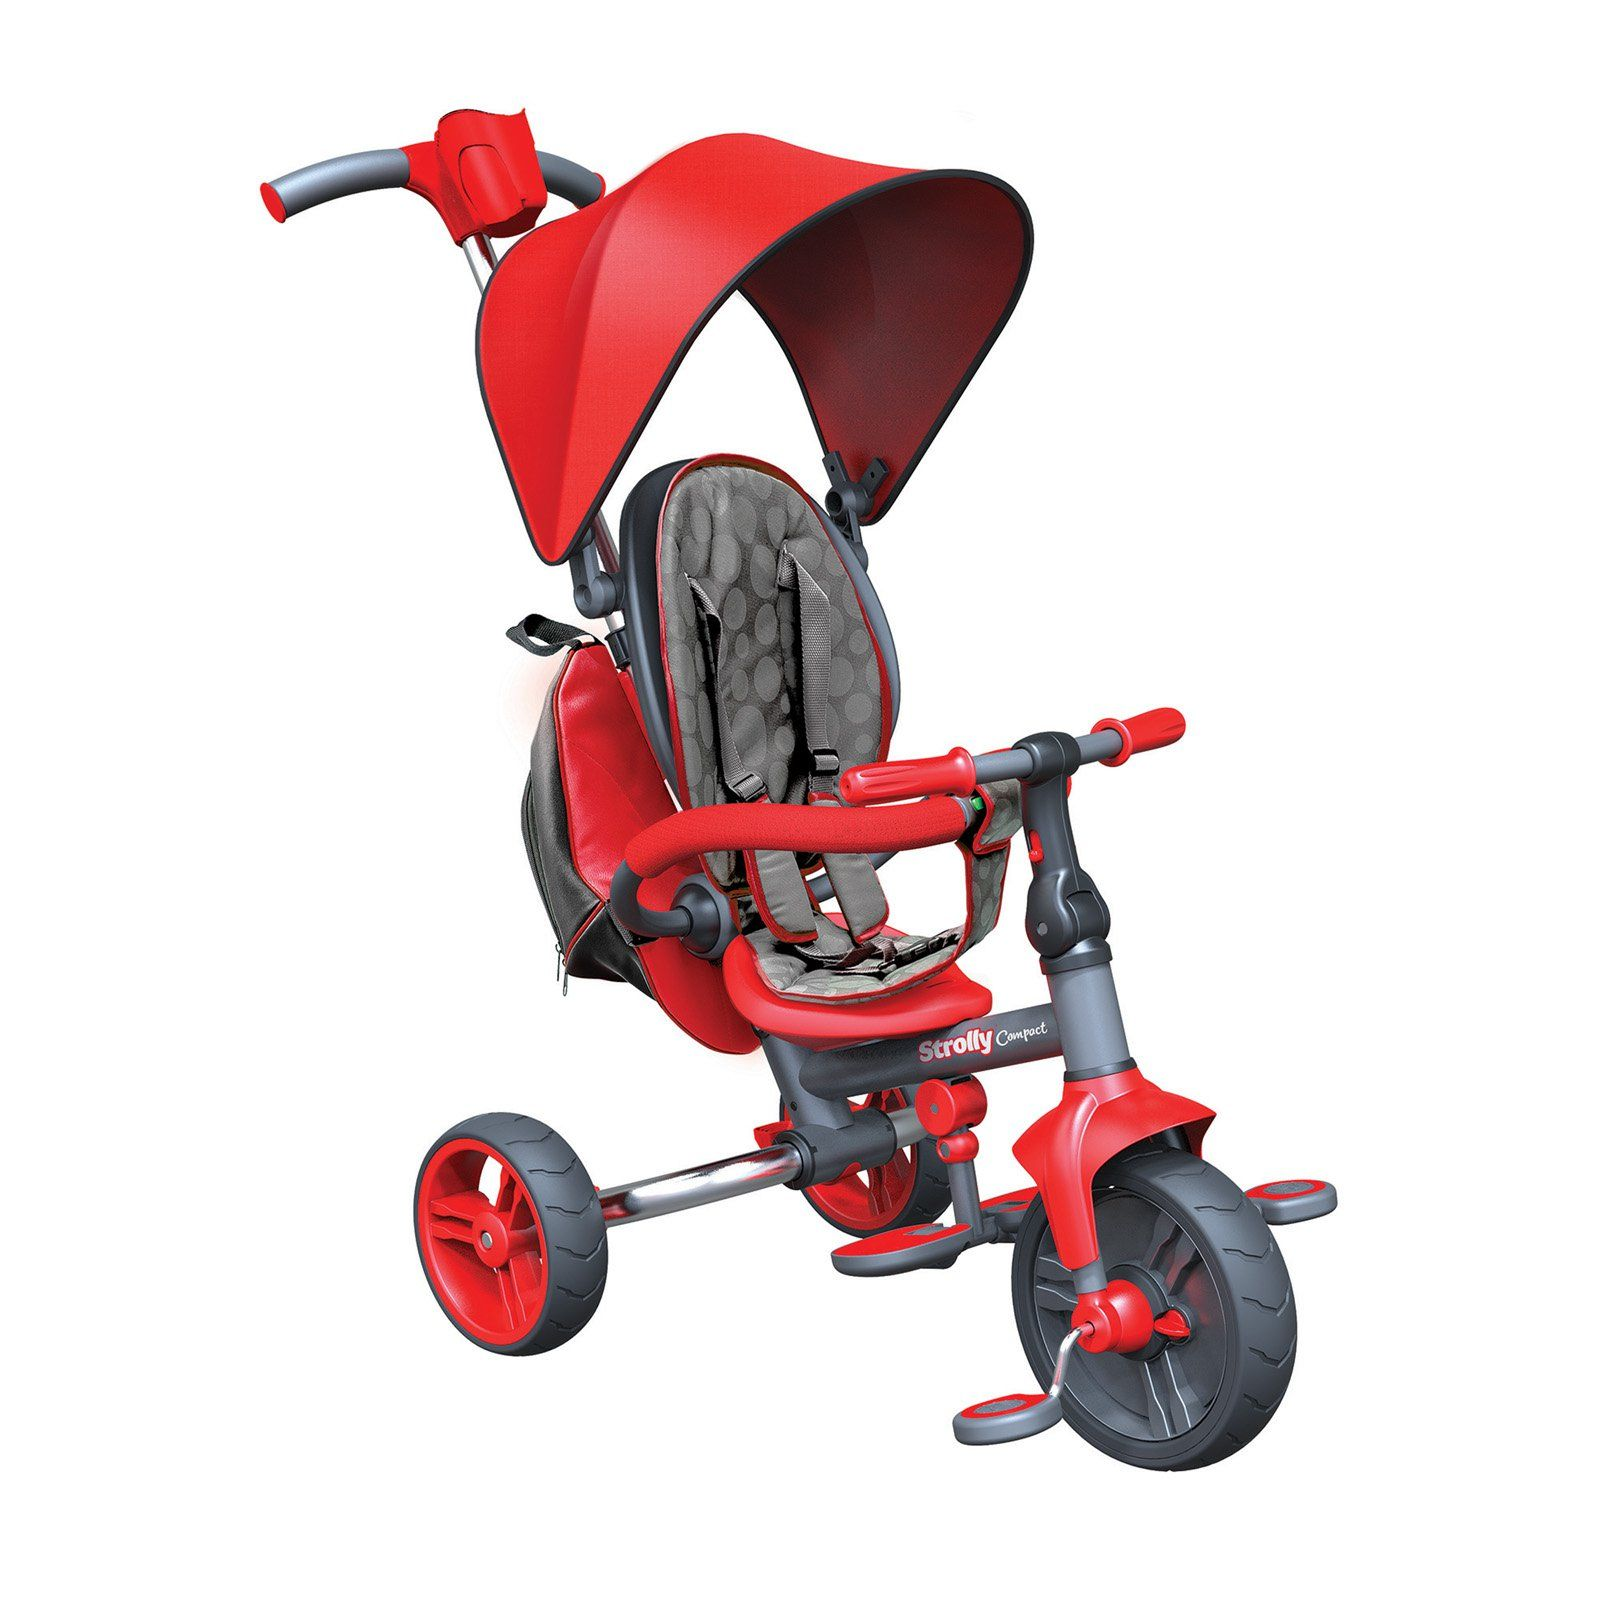 Strolly Compact Stroller and Tricycle Combo with Push